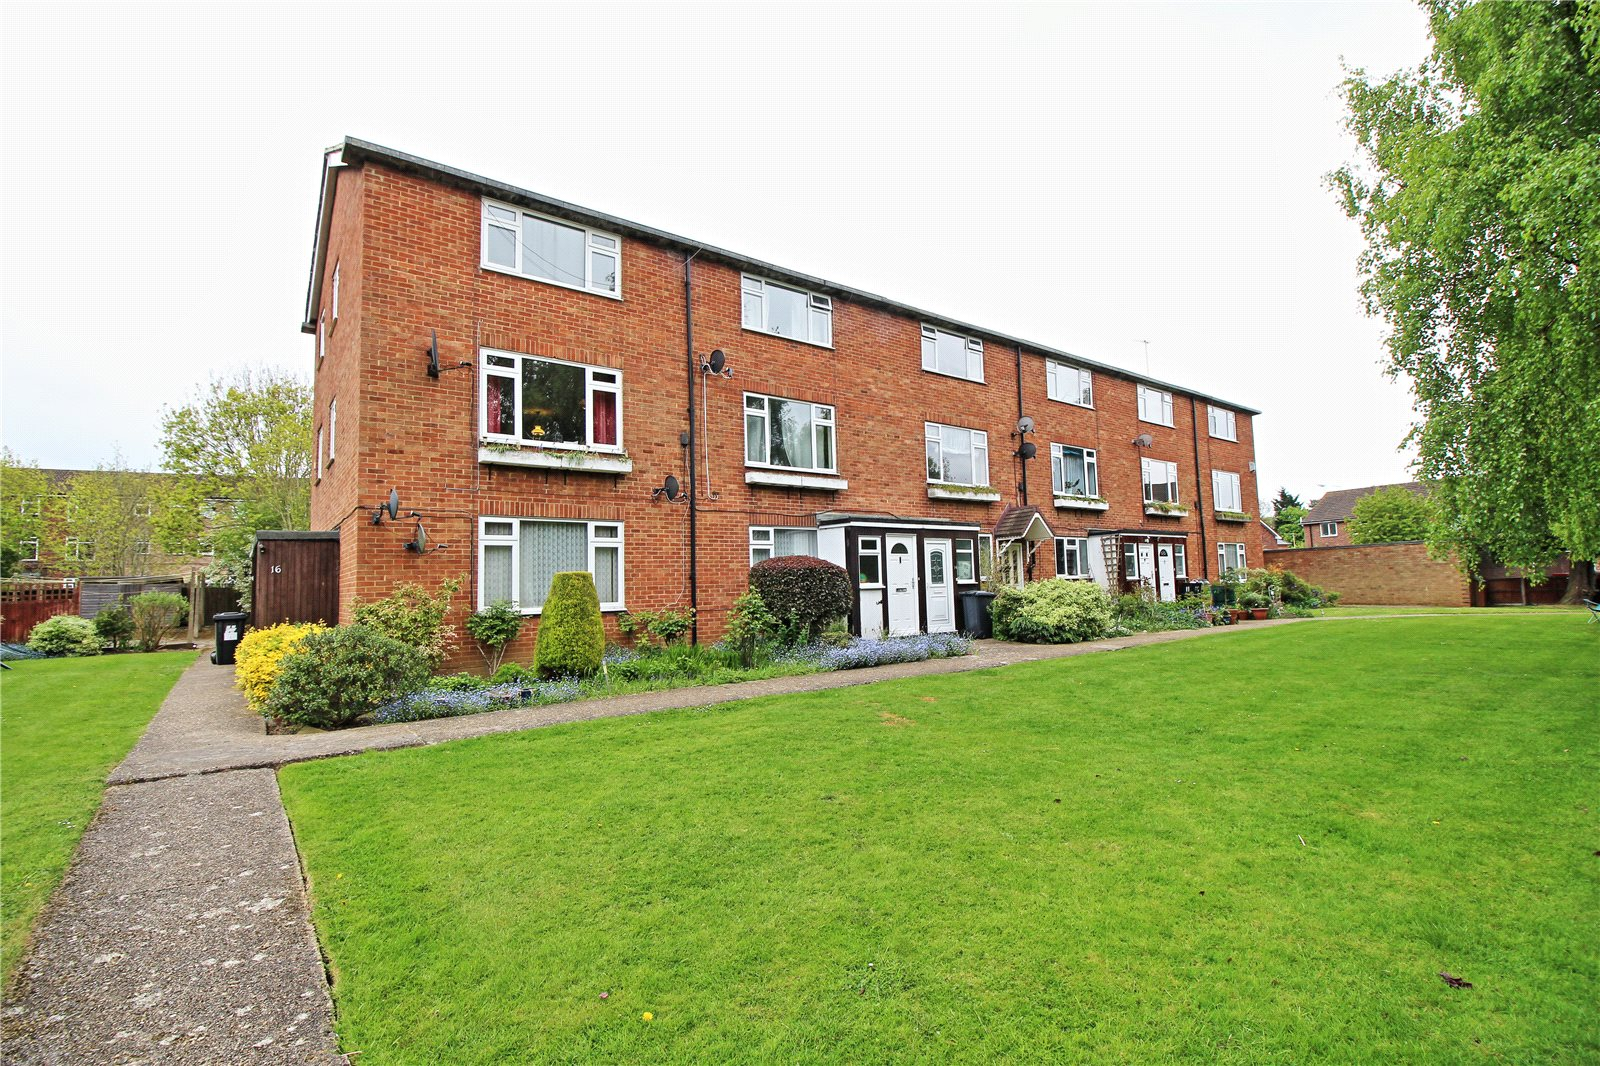 2 Bedrooms Maisonette Flat for sale in Moat Close Bushey Hertfordshire WD23